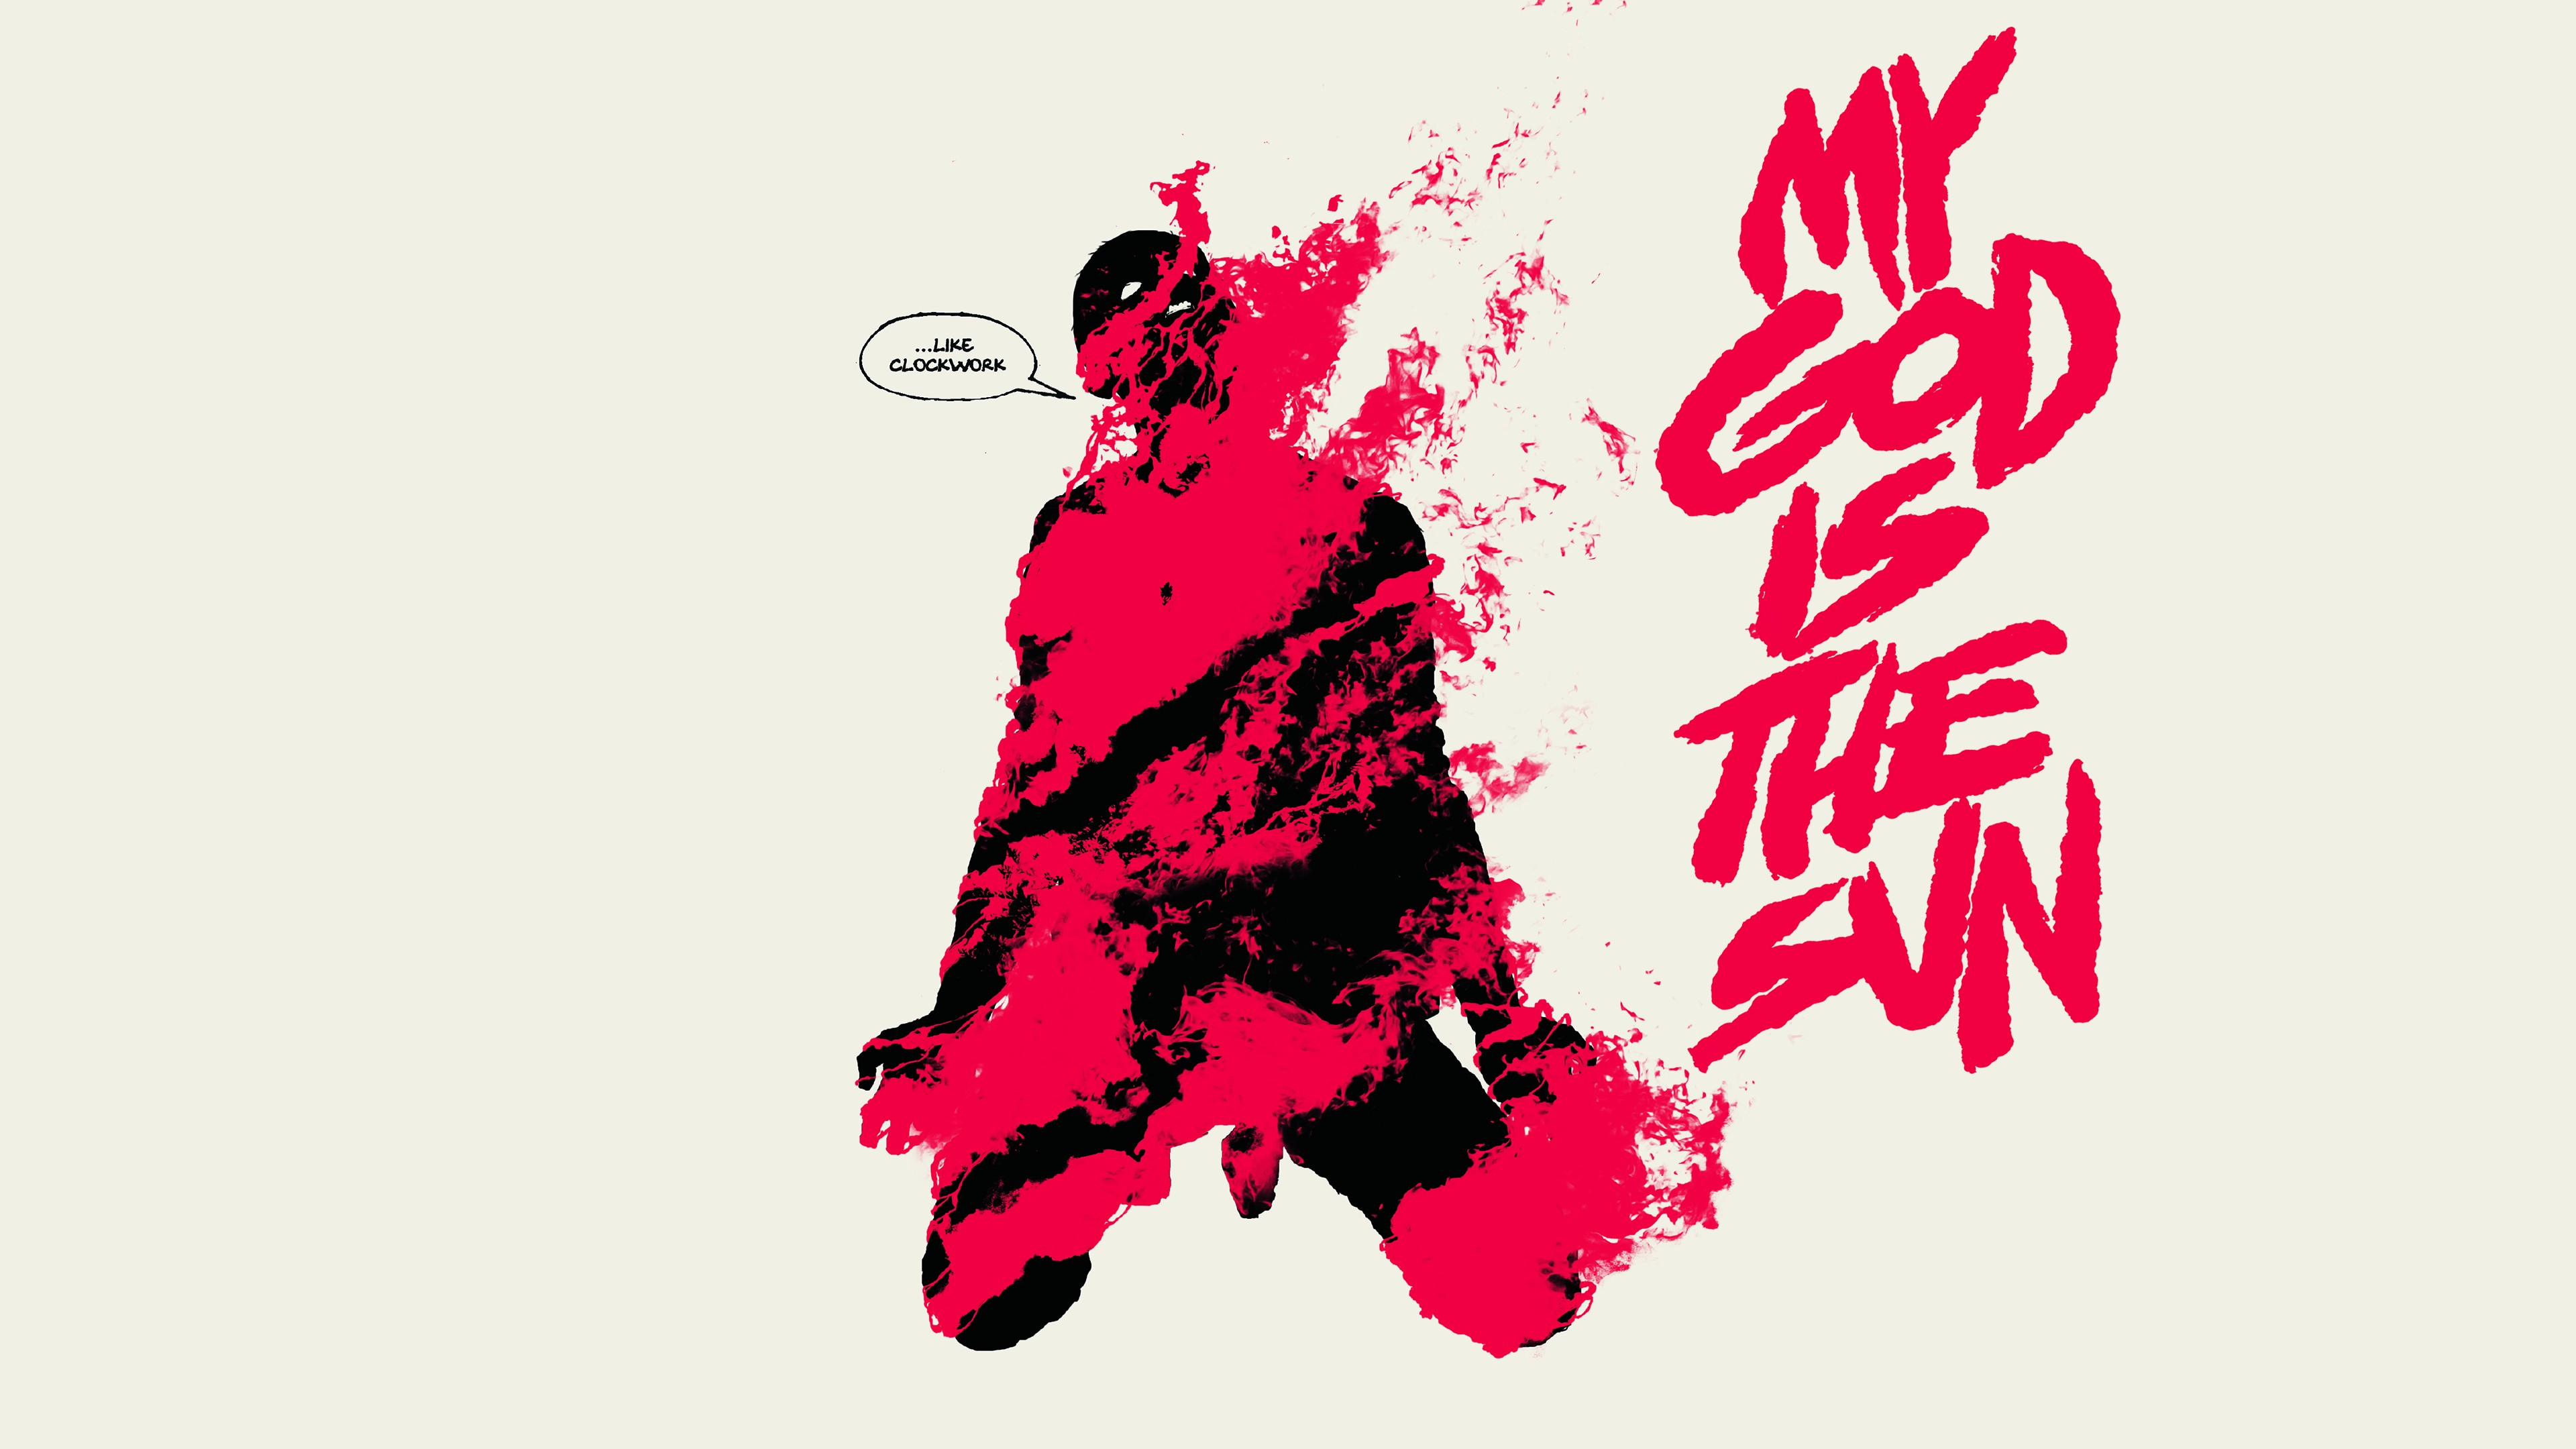 27 Queens of the Stone Age HD Wallpapers | Backgrounds ... Queens Of The Stone Age Like Clockwork Wallpaper